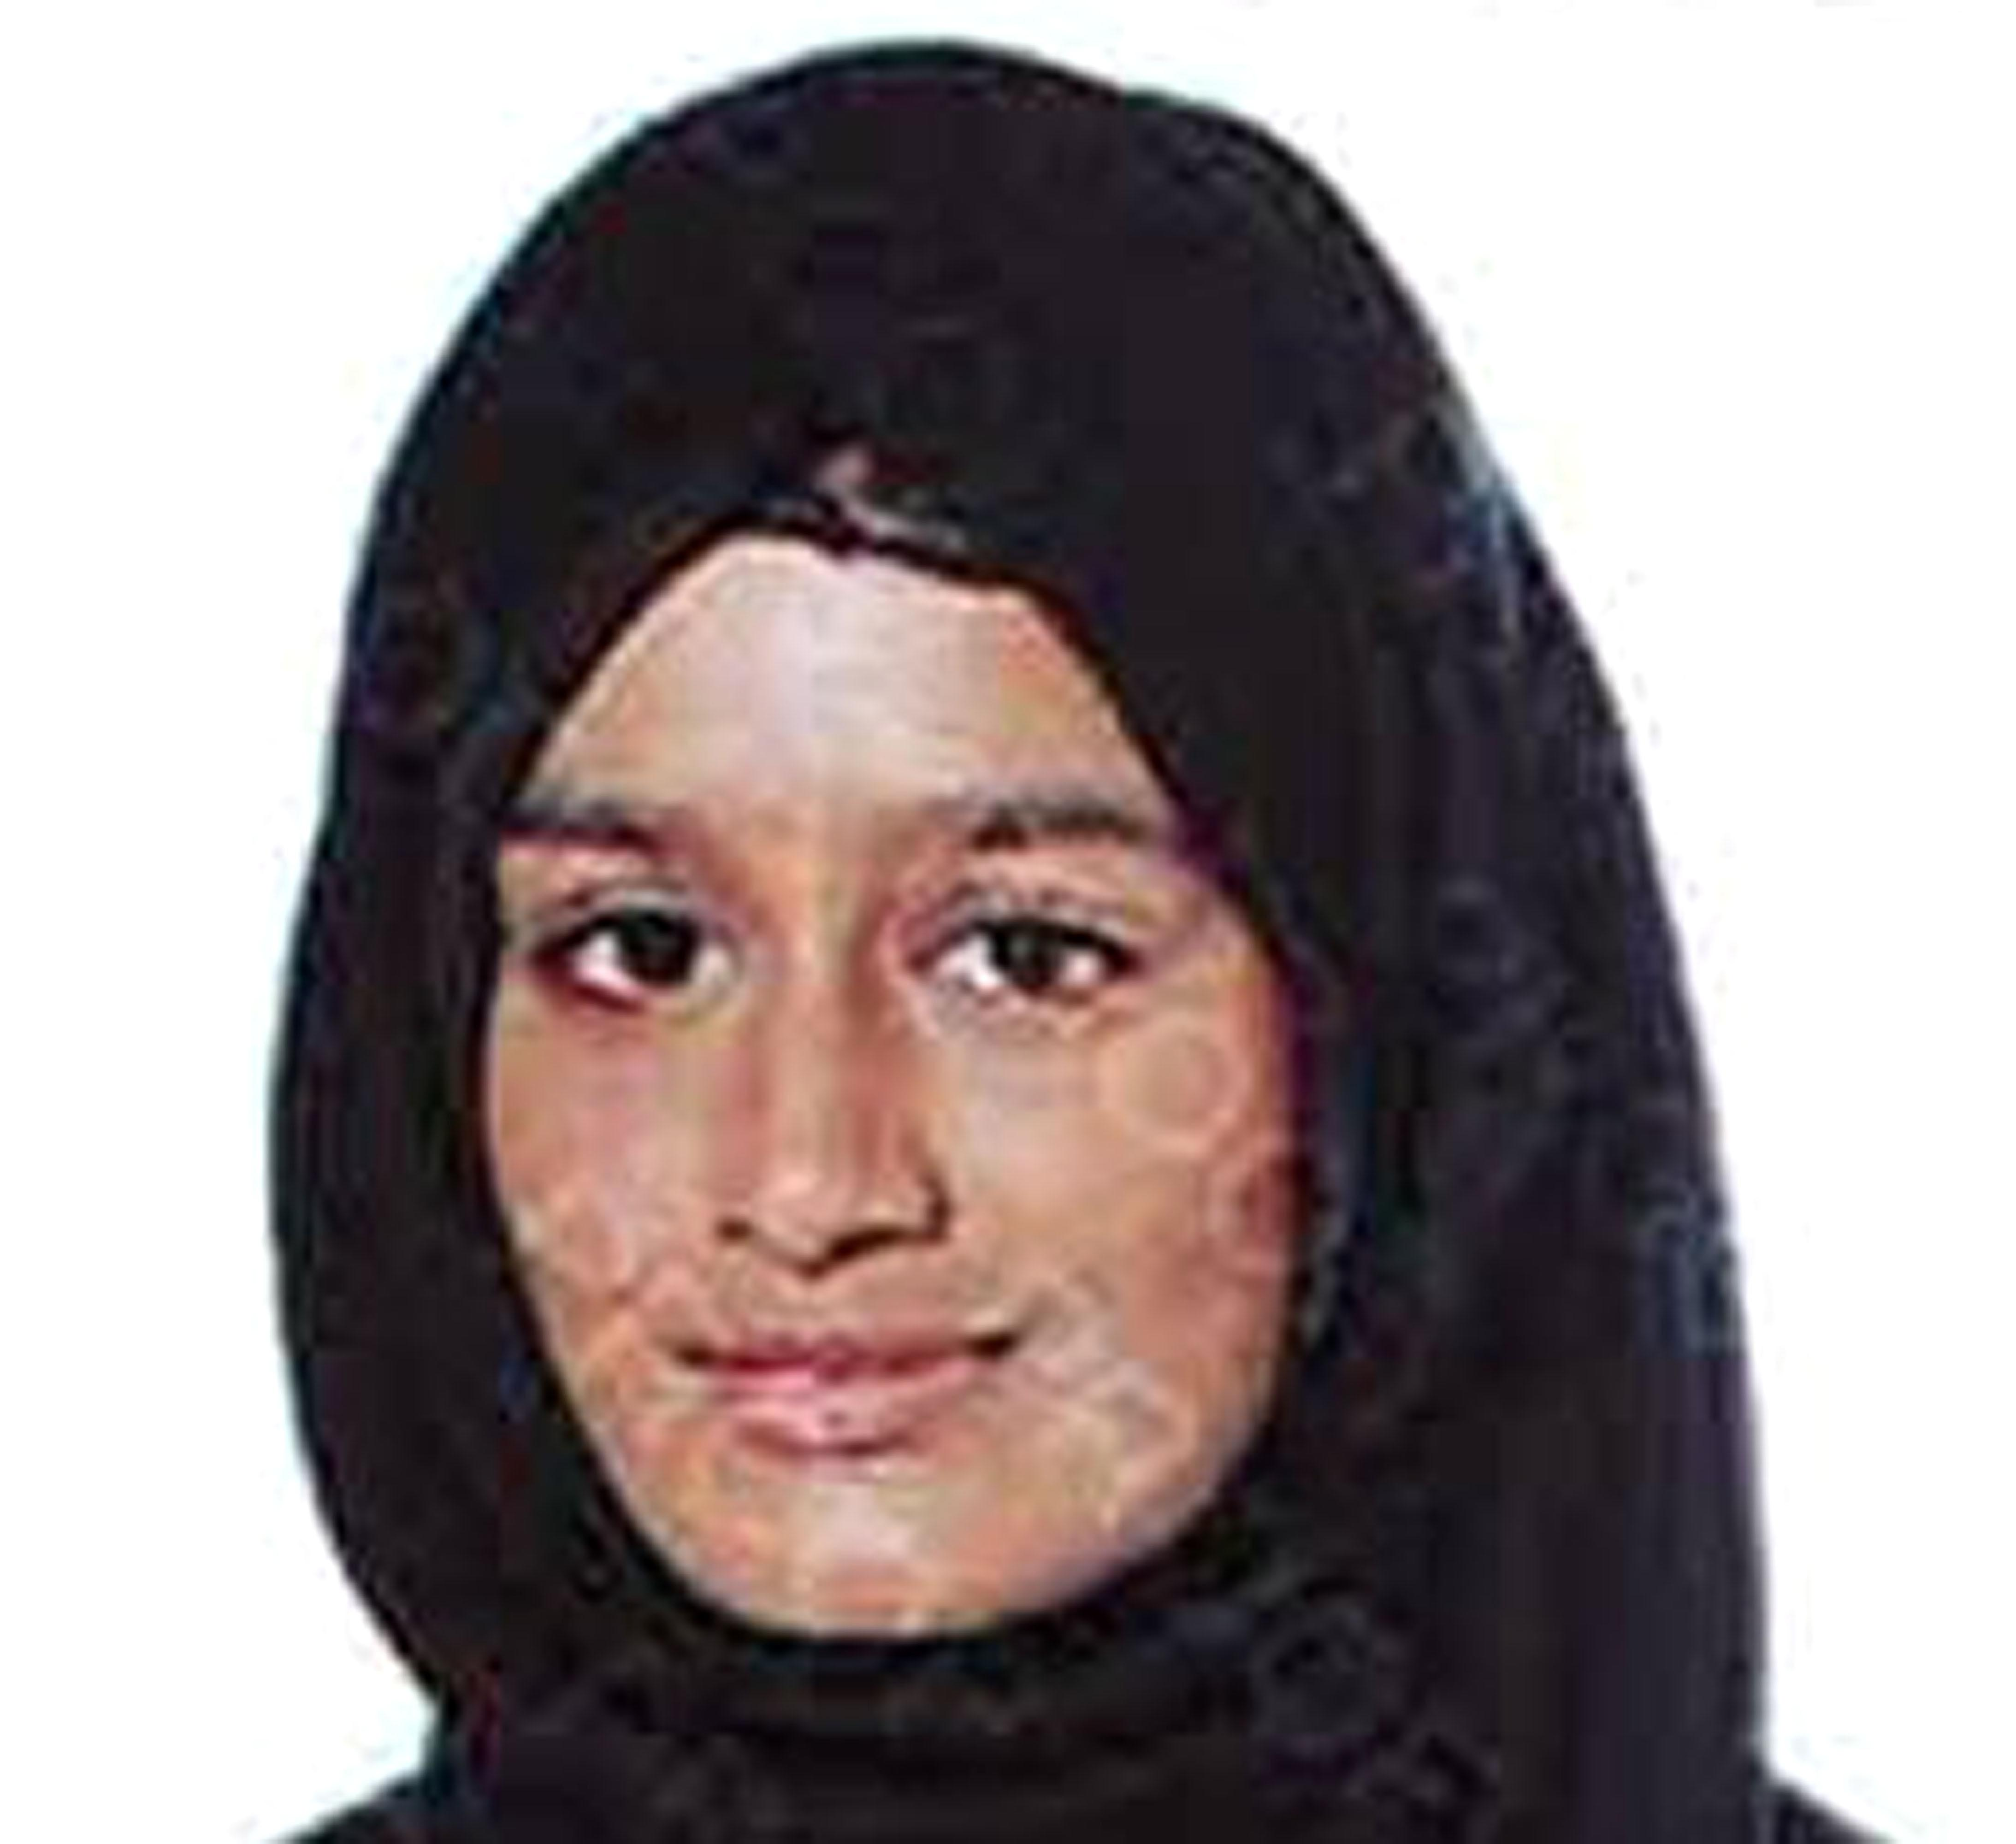 BEST QUALITY AVAILABLE Undated handout photo issued by the Metropolitan Police of Shamima Begum,15 who is feared to have travelled to Syria via Turkey.